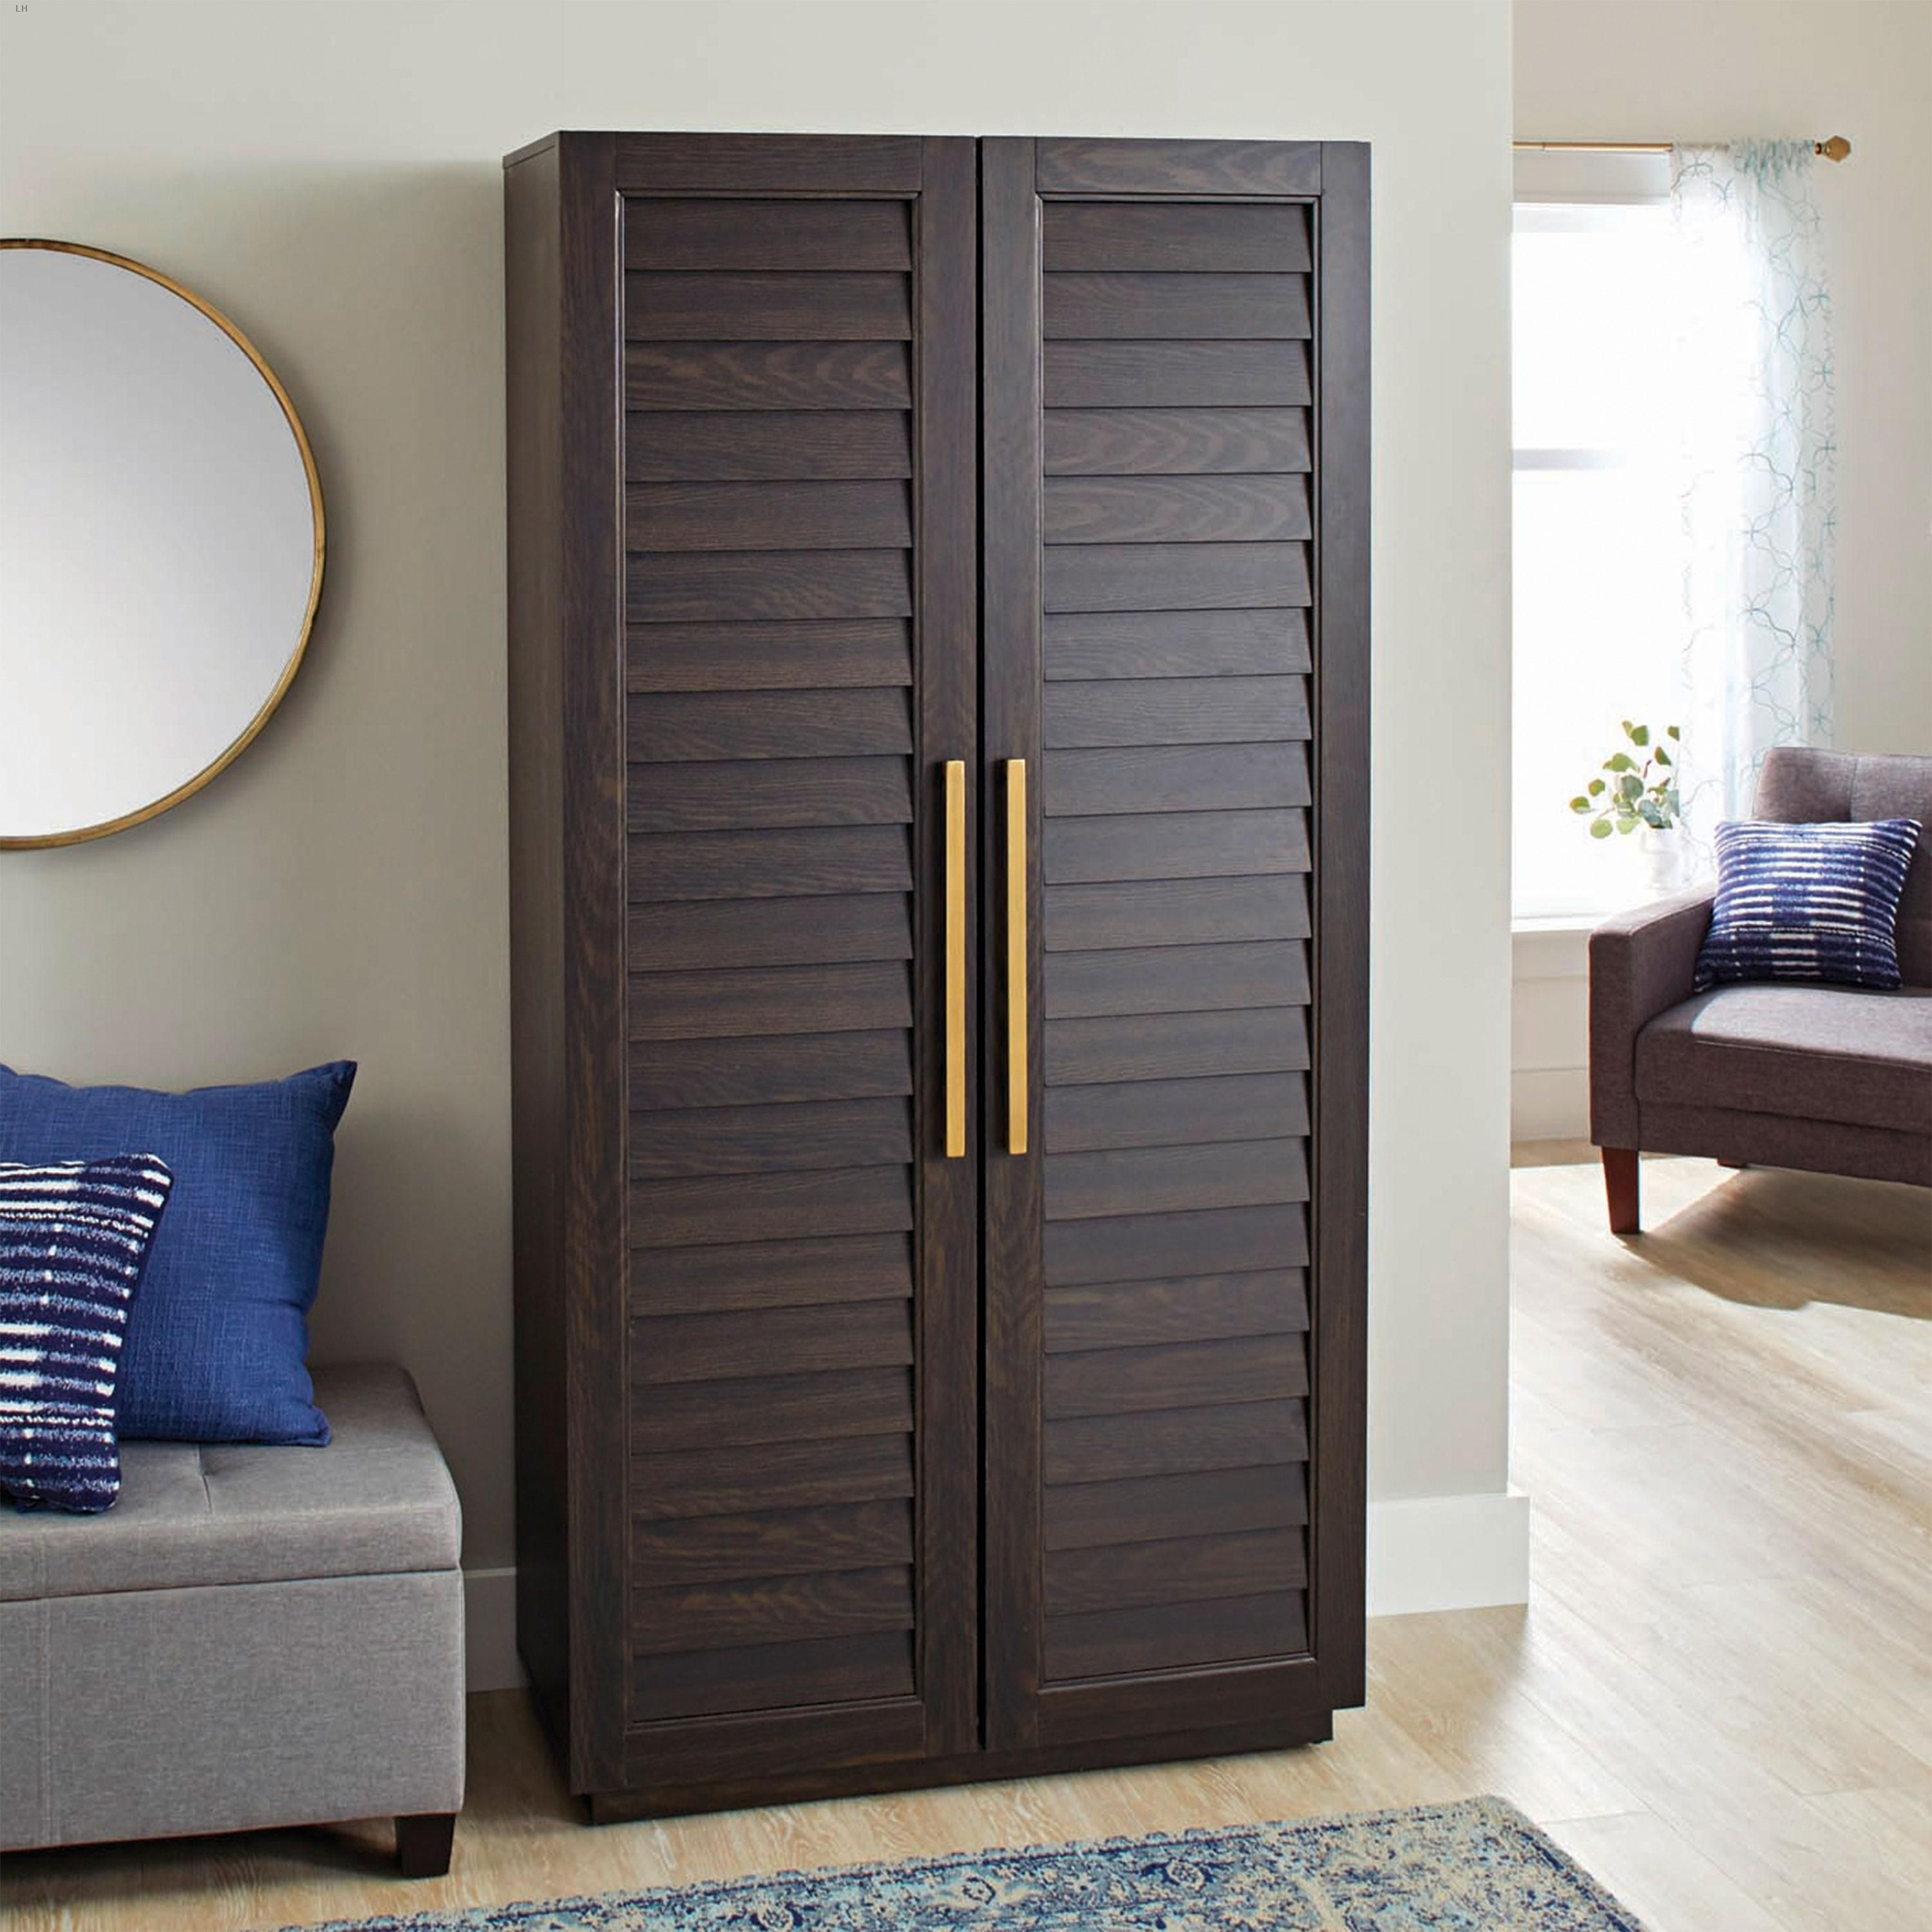 ad3cfae4f3d4ad979d5a88caf149030e - Better Homes And Gardens Shutter Bookcase